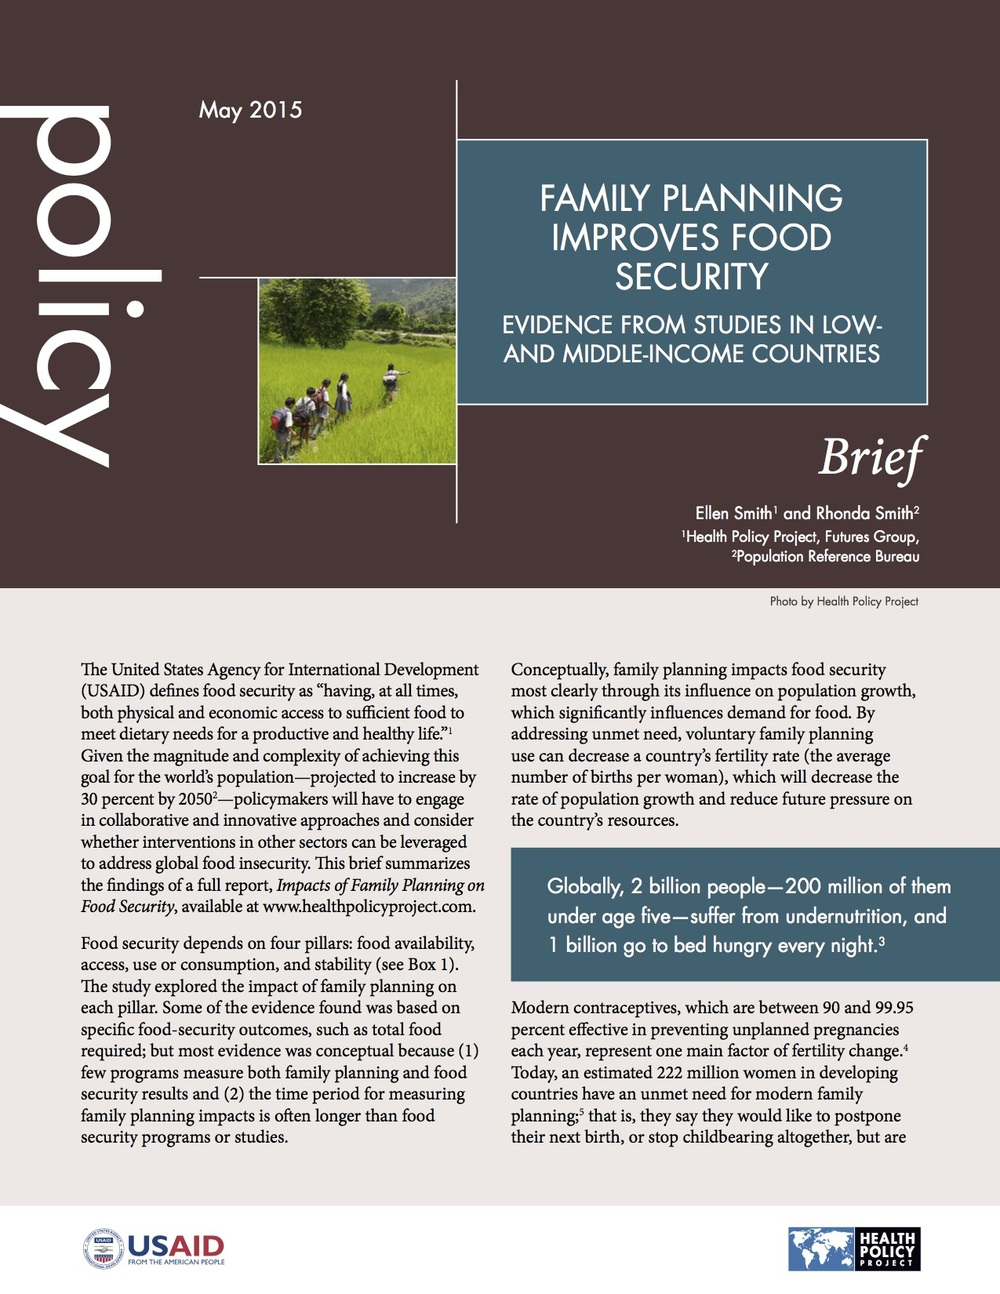 Family Planning Improves Food Security: Evidence from Studies in Low- And Middle-Income Countries